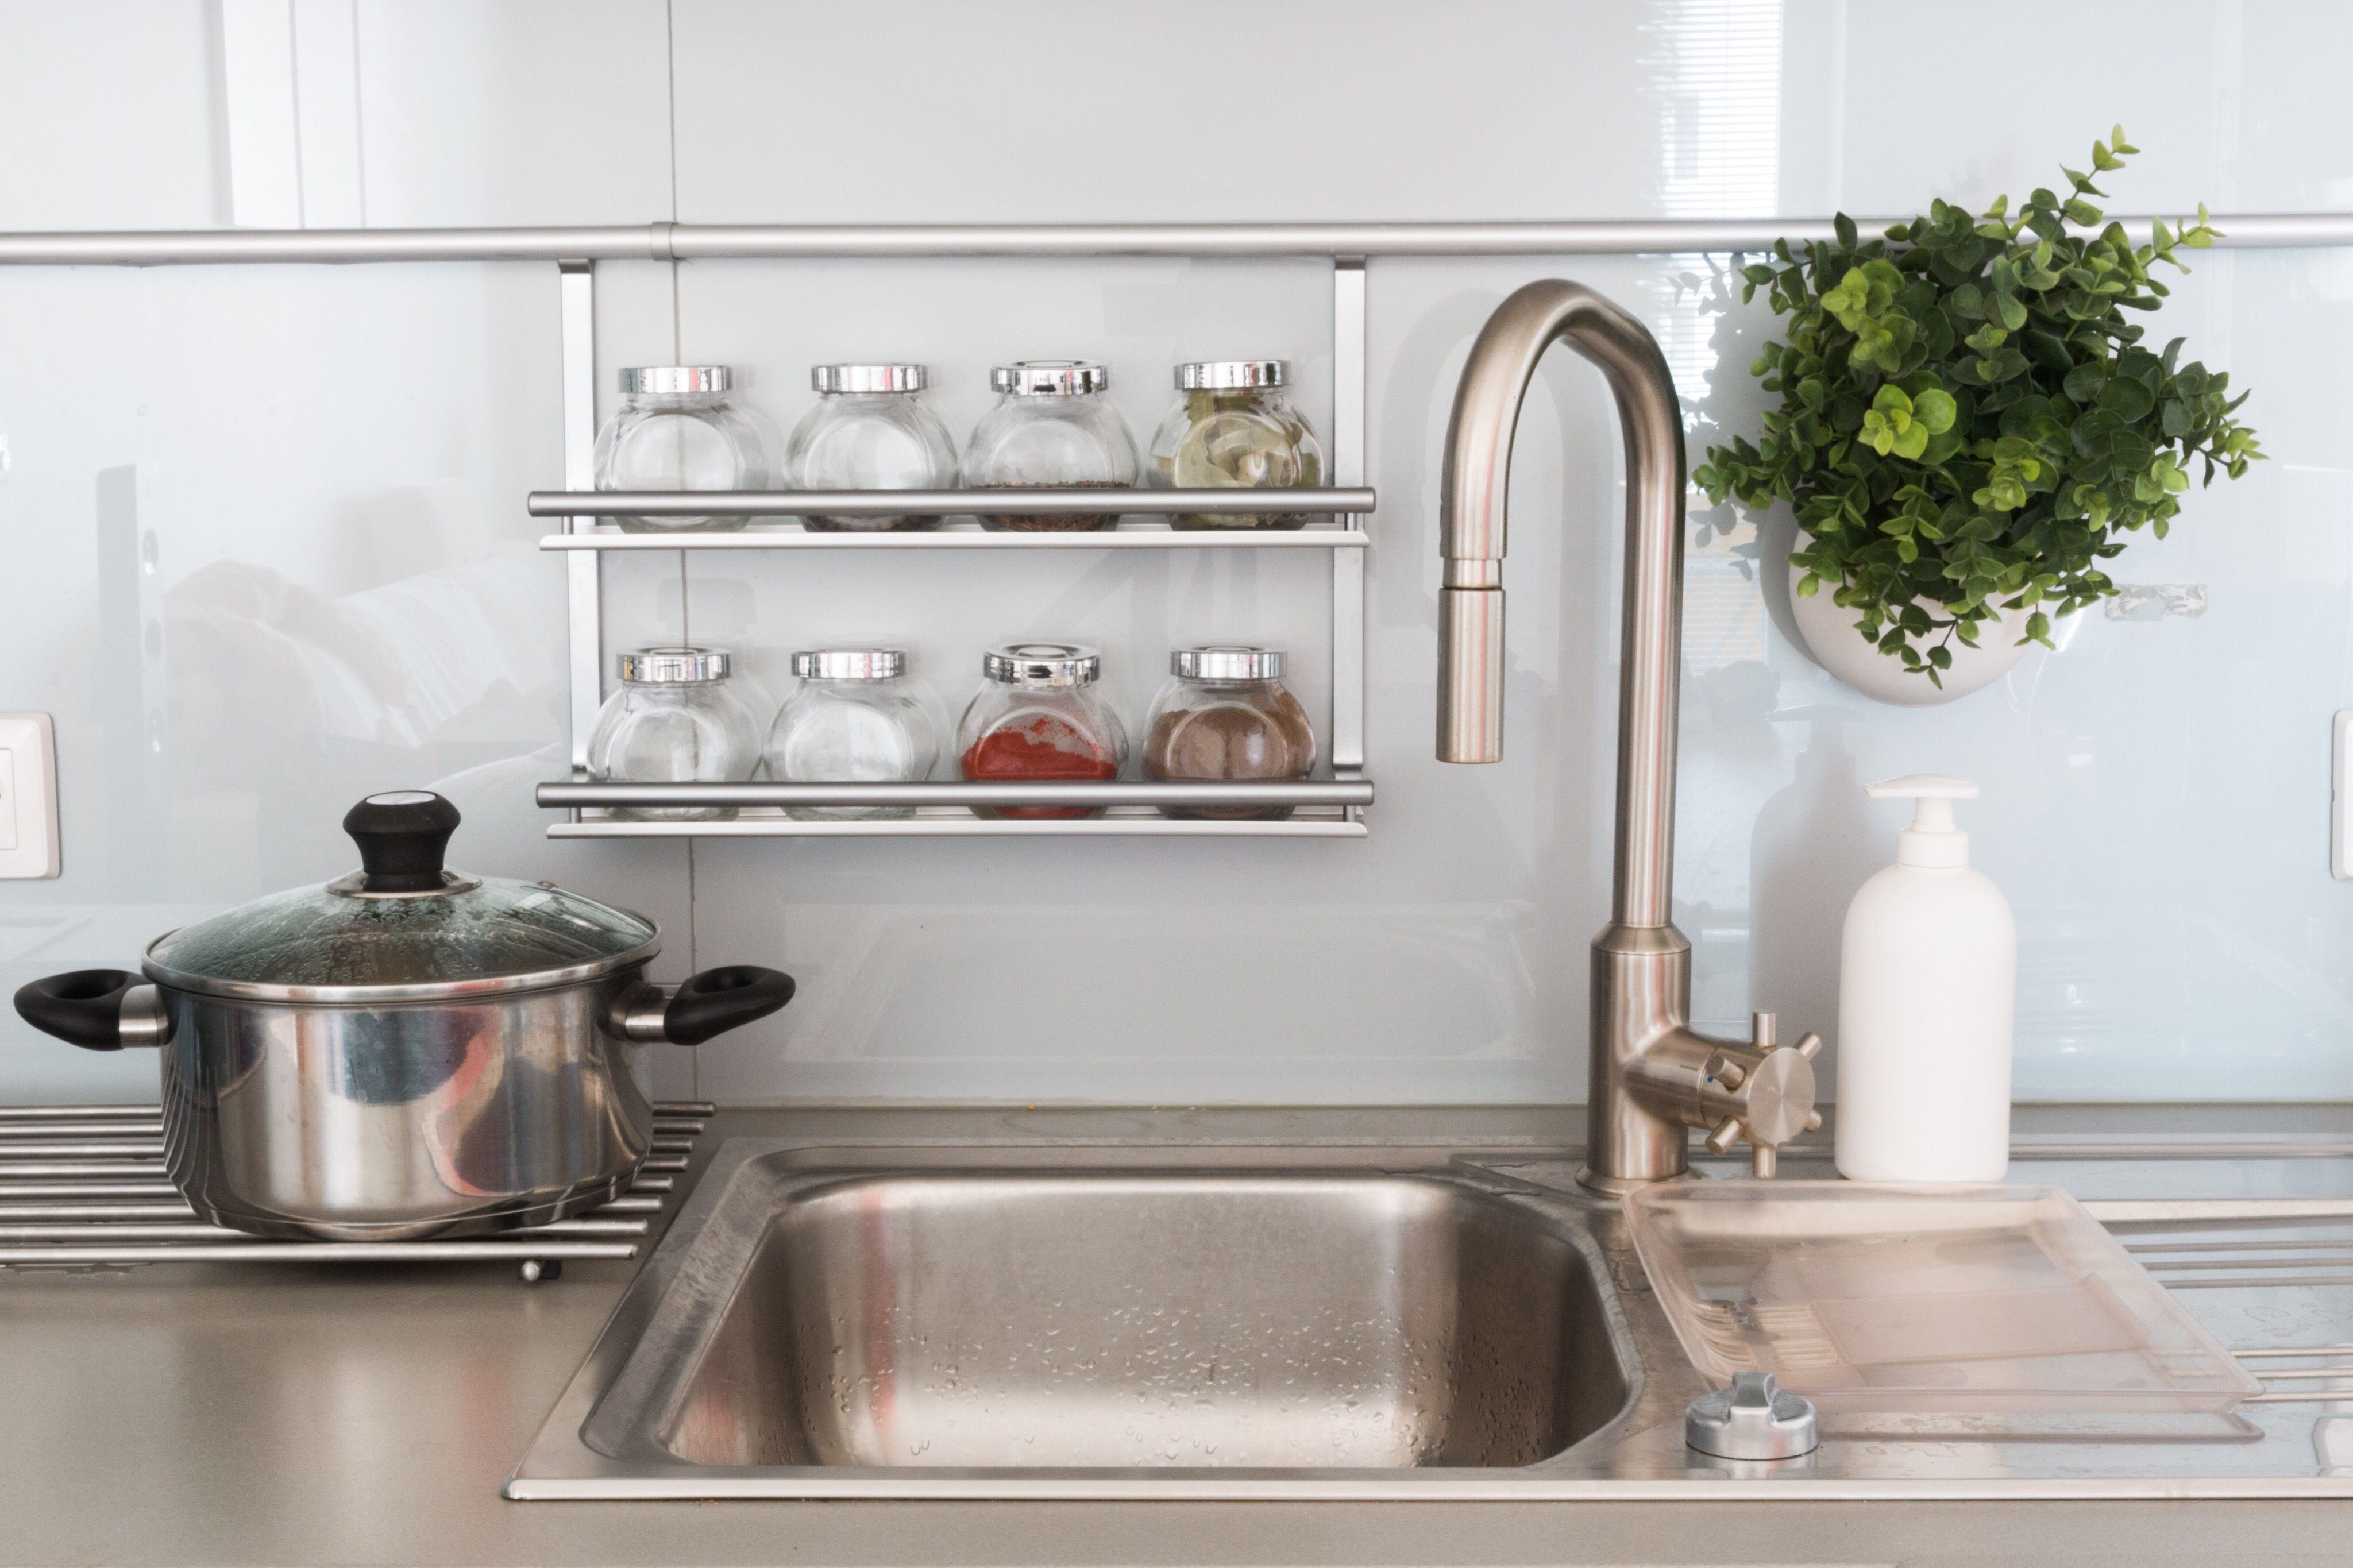 Troubleshoot Common Issues and Learn How to Repair a Garbage Disposal